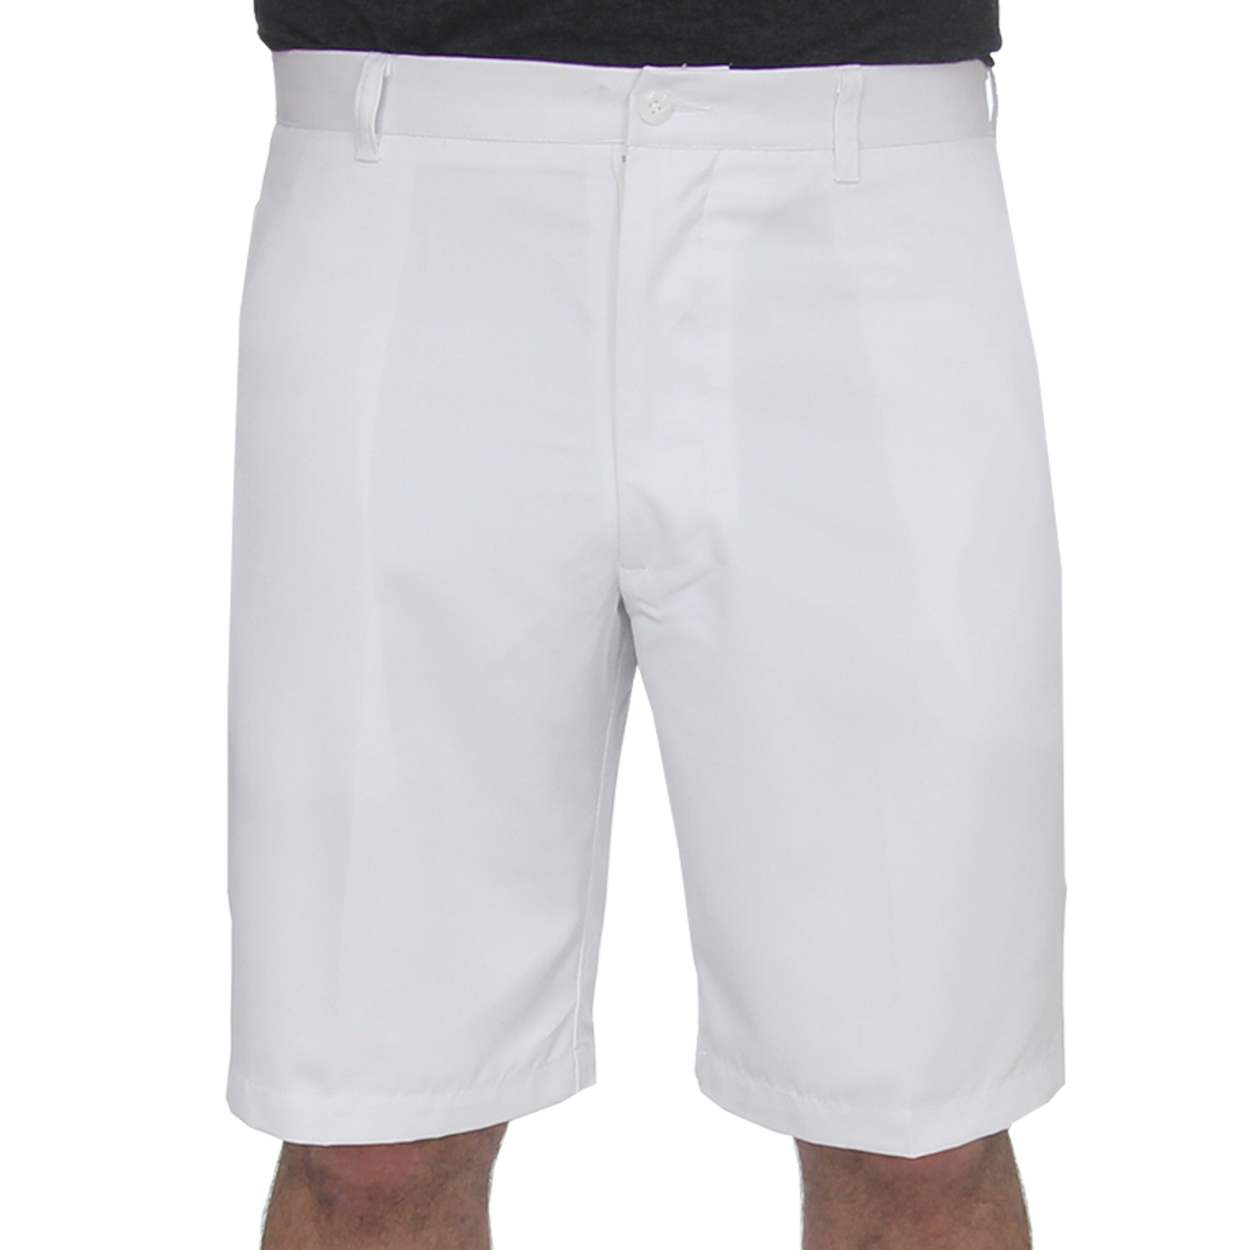 Byron Nelson Comfort-Tec Flat Front Shorts